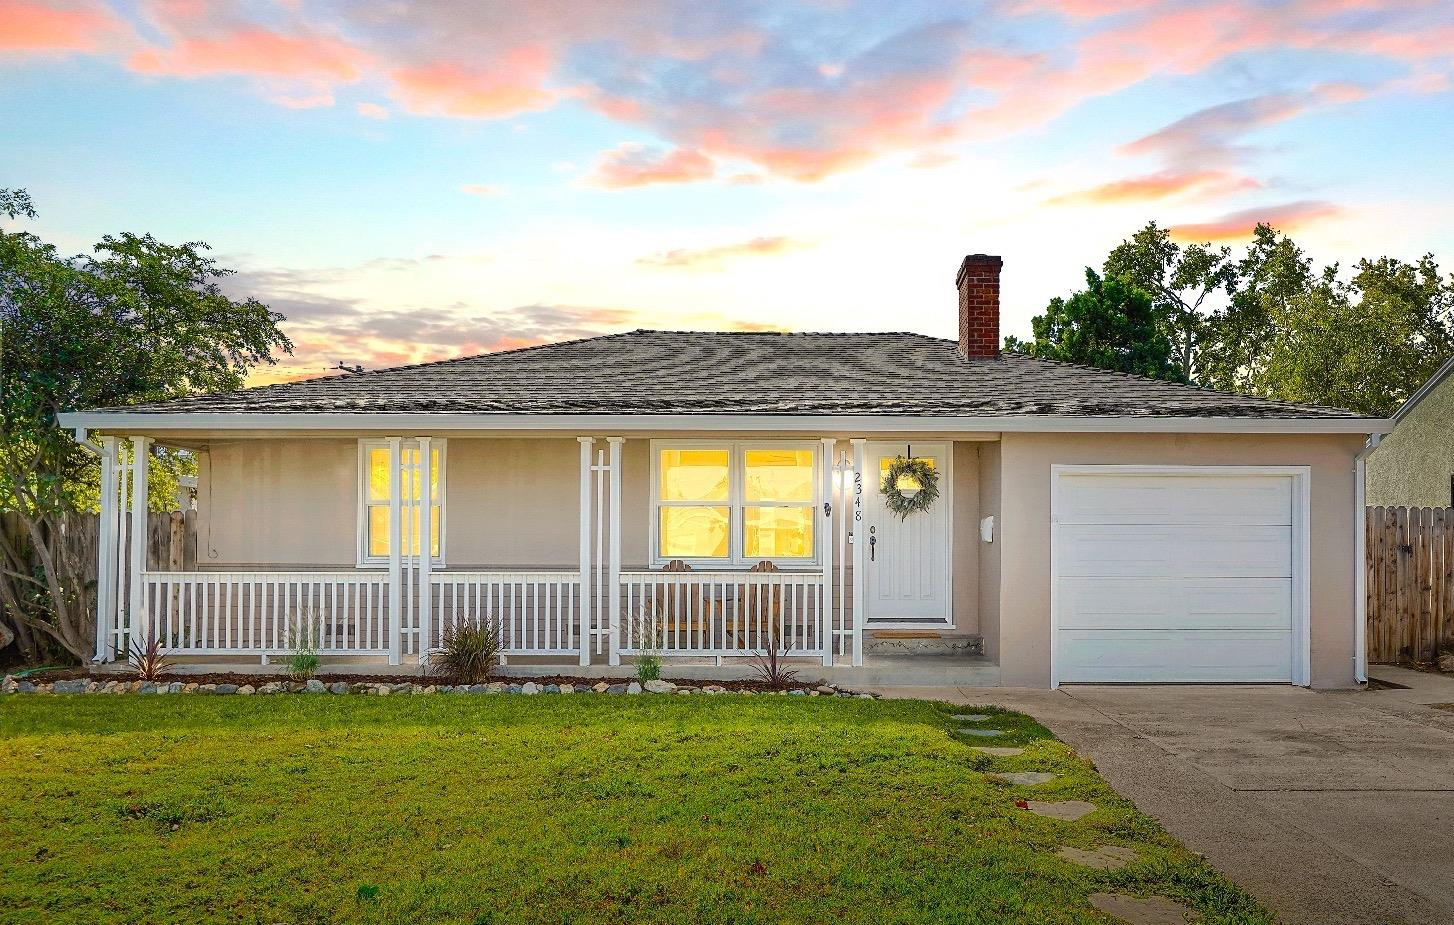 Welcome to Hollywood Park's most darling updated cottage on a well maintained quiet street. Come che